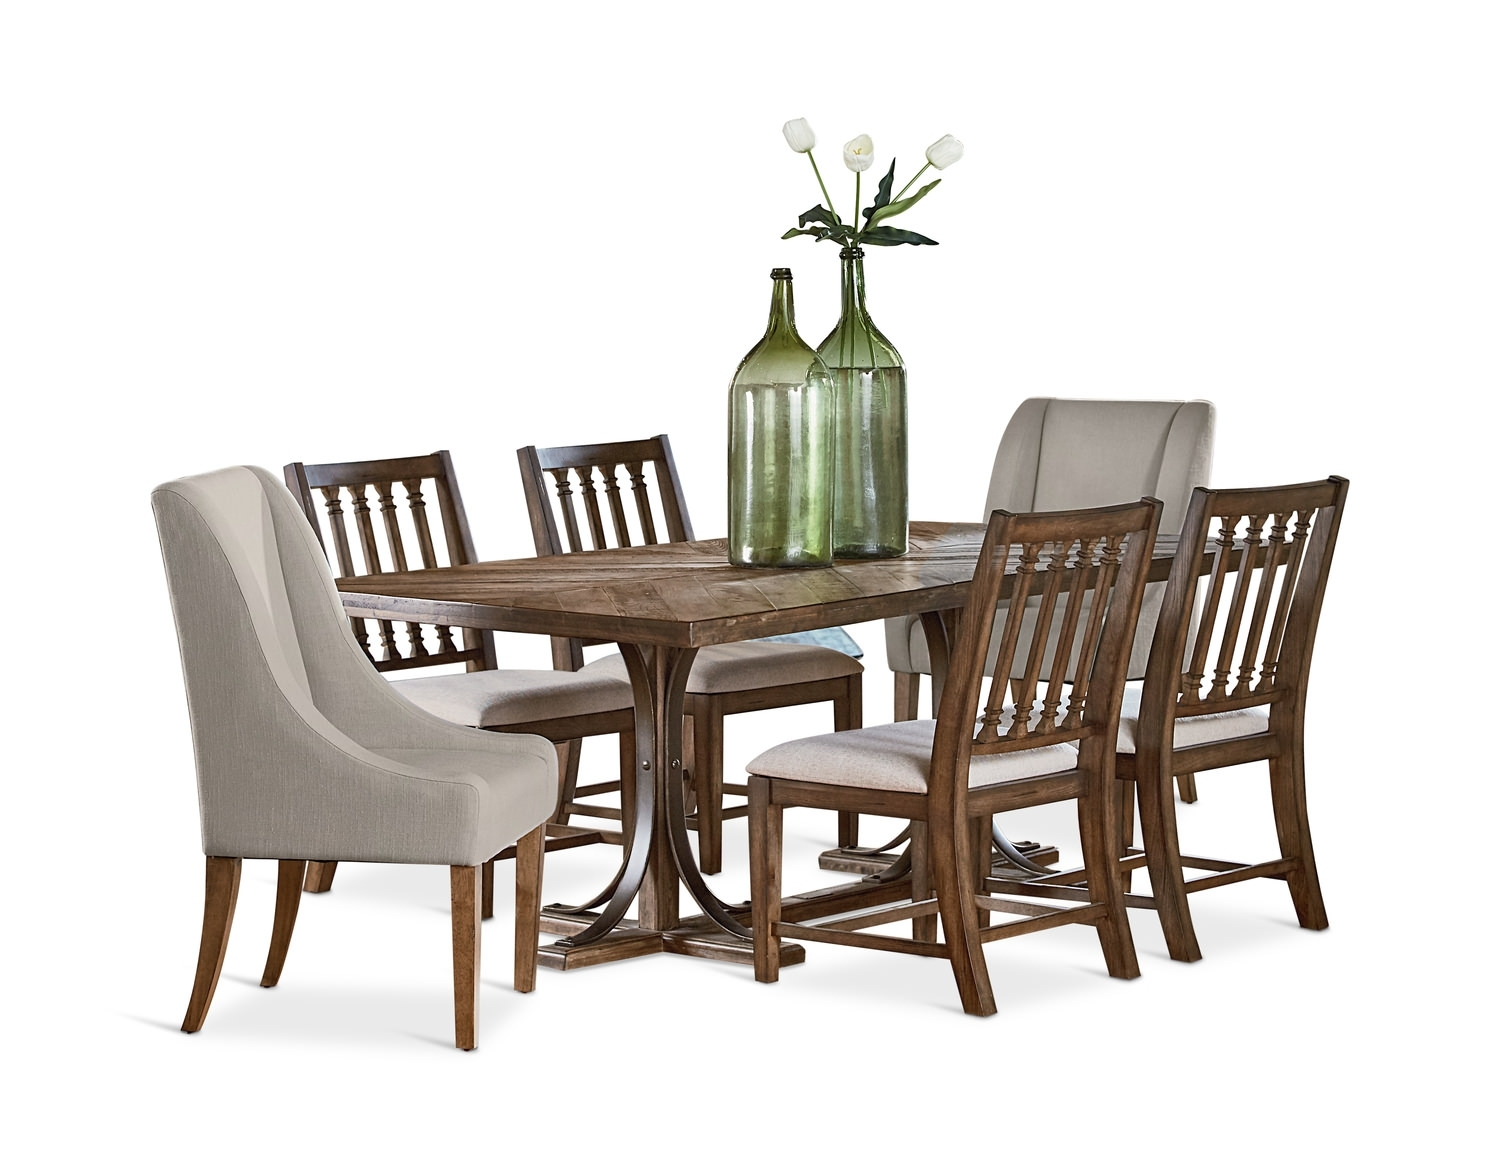 Trestle Dining Table And 4 Revival Side| Hom Furniture With Best And Newest Magnolia Home Shop Floor Dining Tables With Iron Trestle (Image 20 of 20)